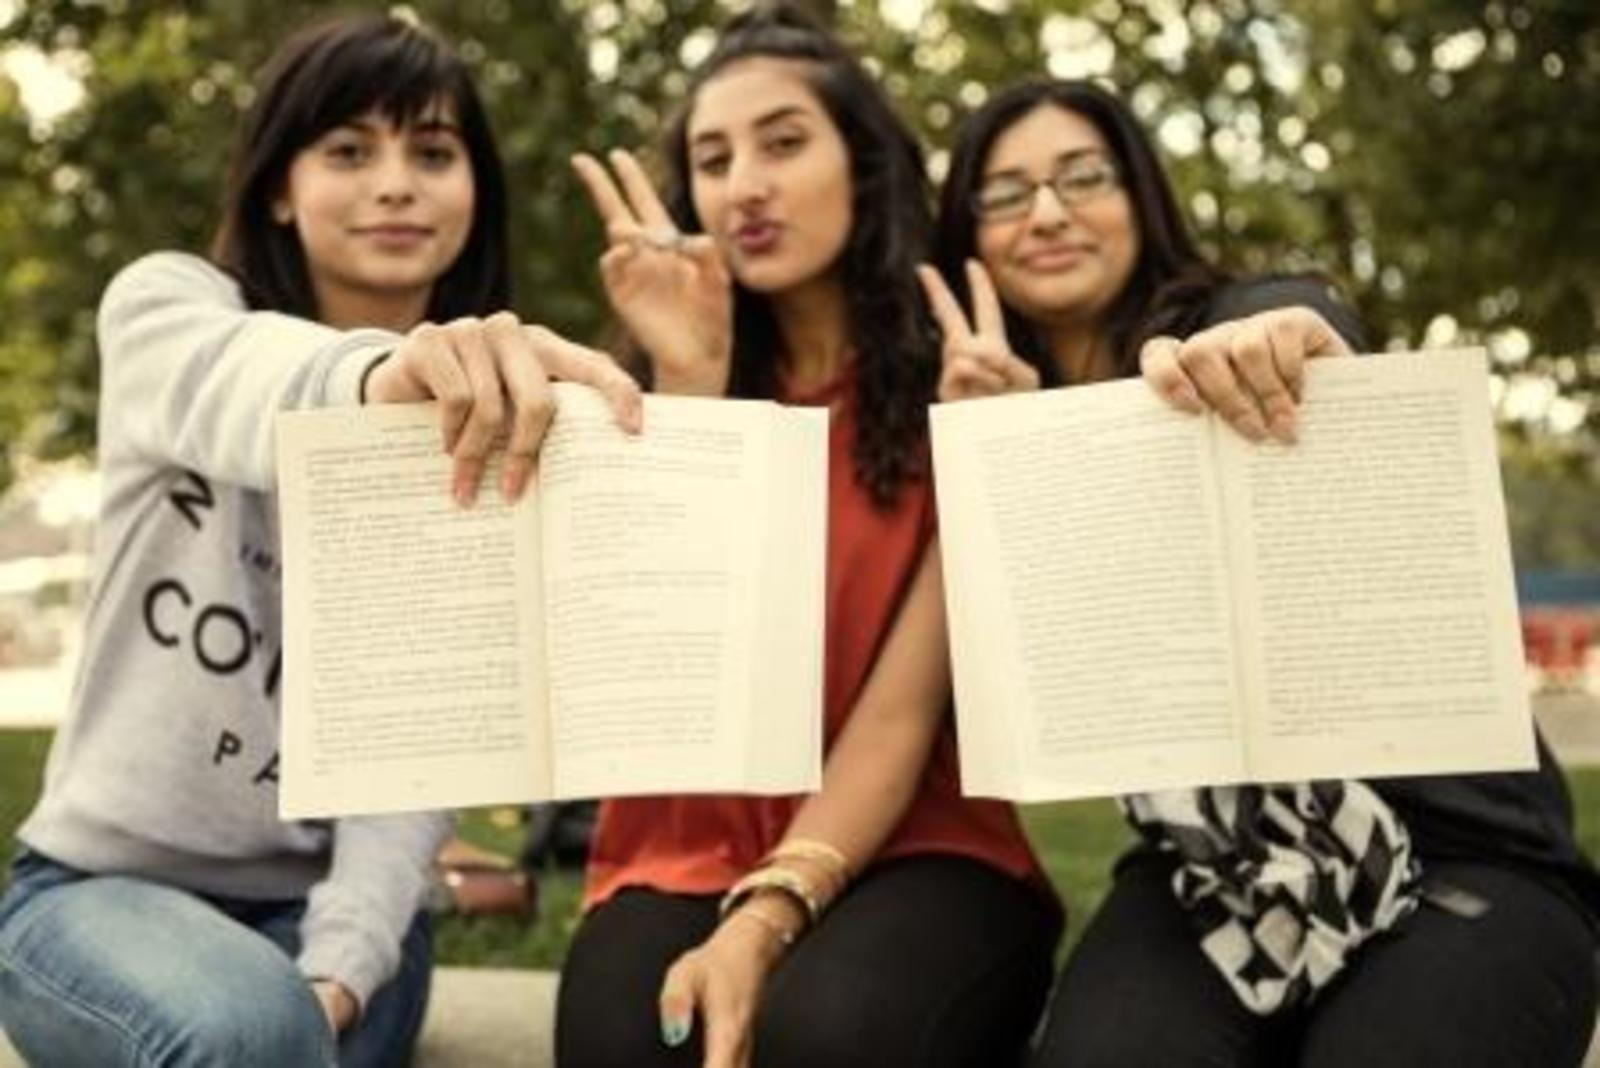 Rh three girls holding books